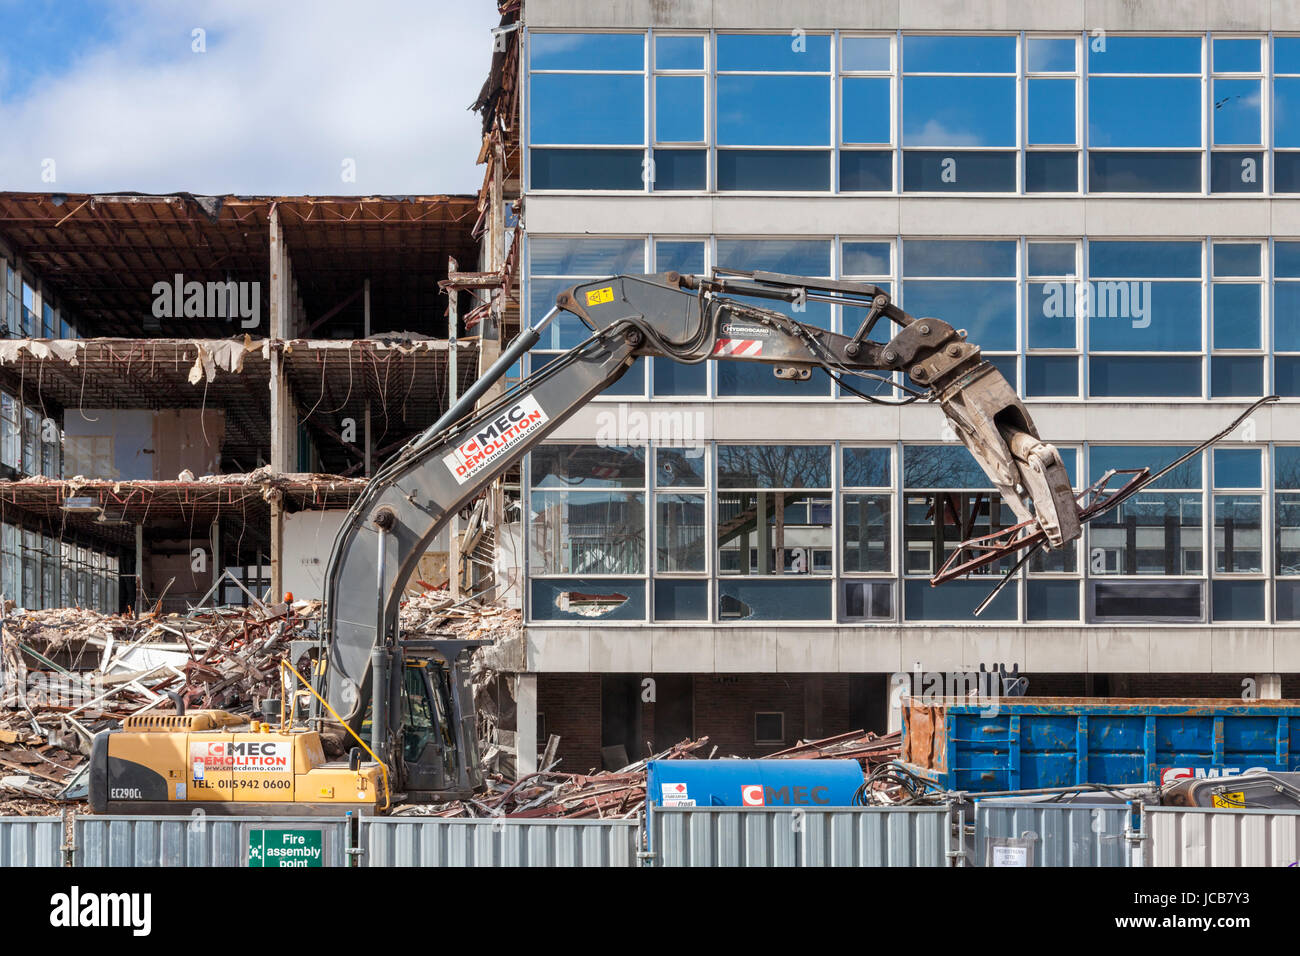 Demolition excavator at work during the demolition of office buildings, Nottinghamshire, England, UK - Stock Image